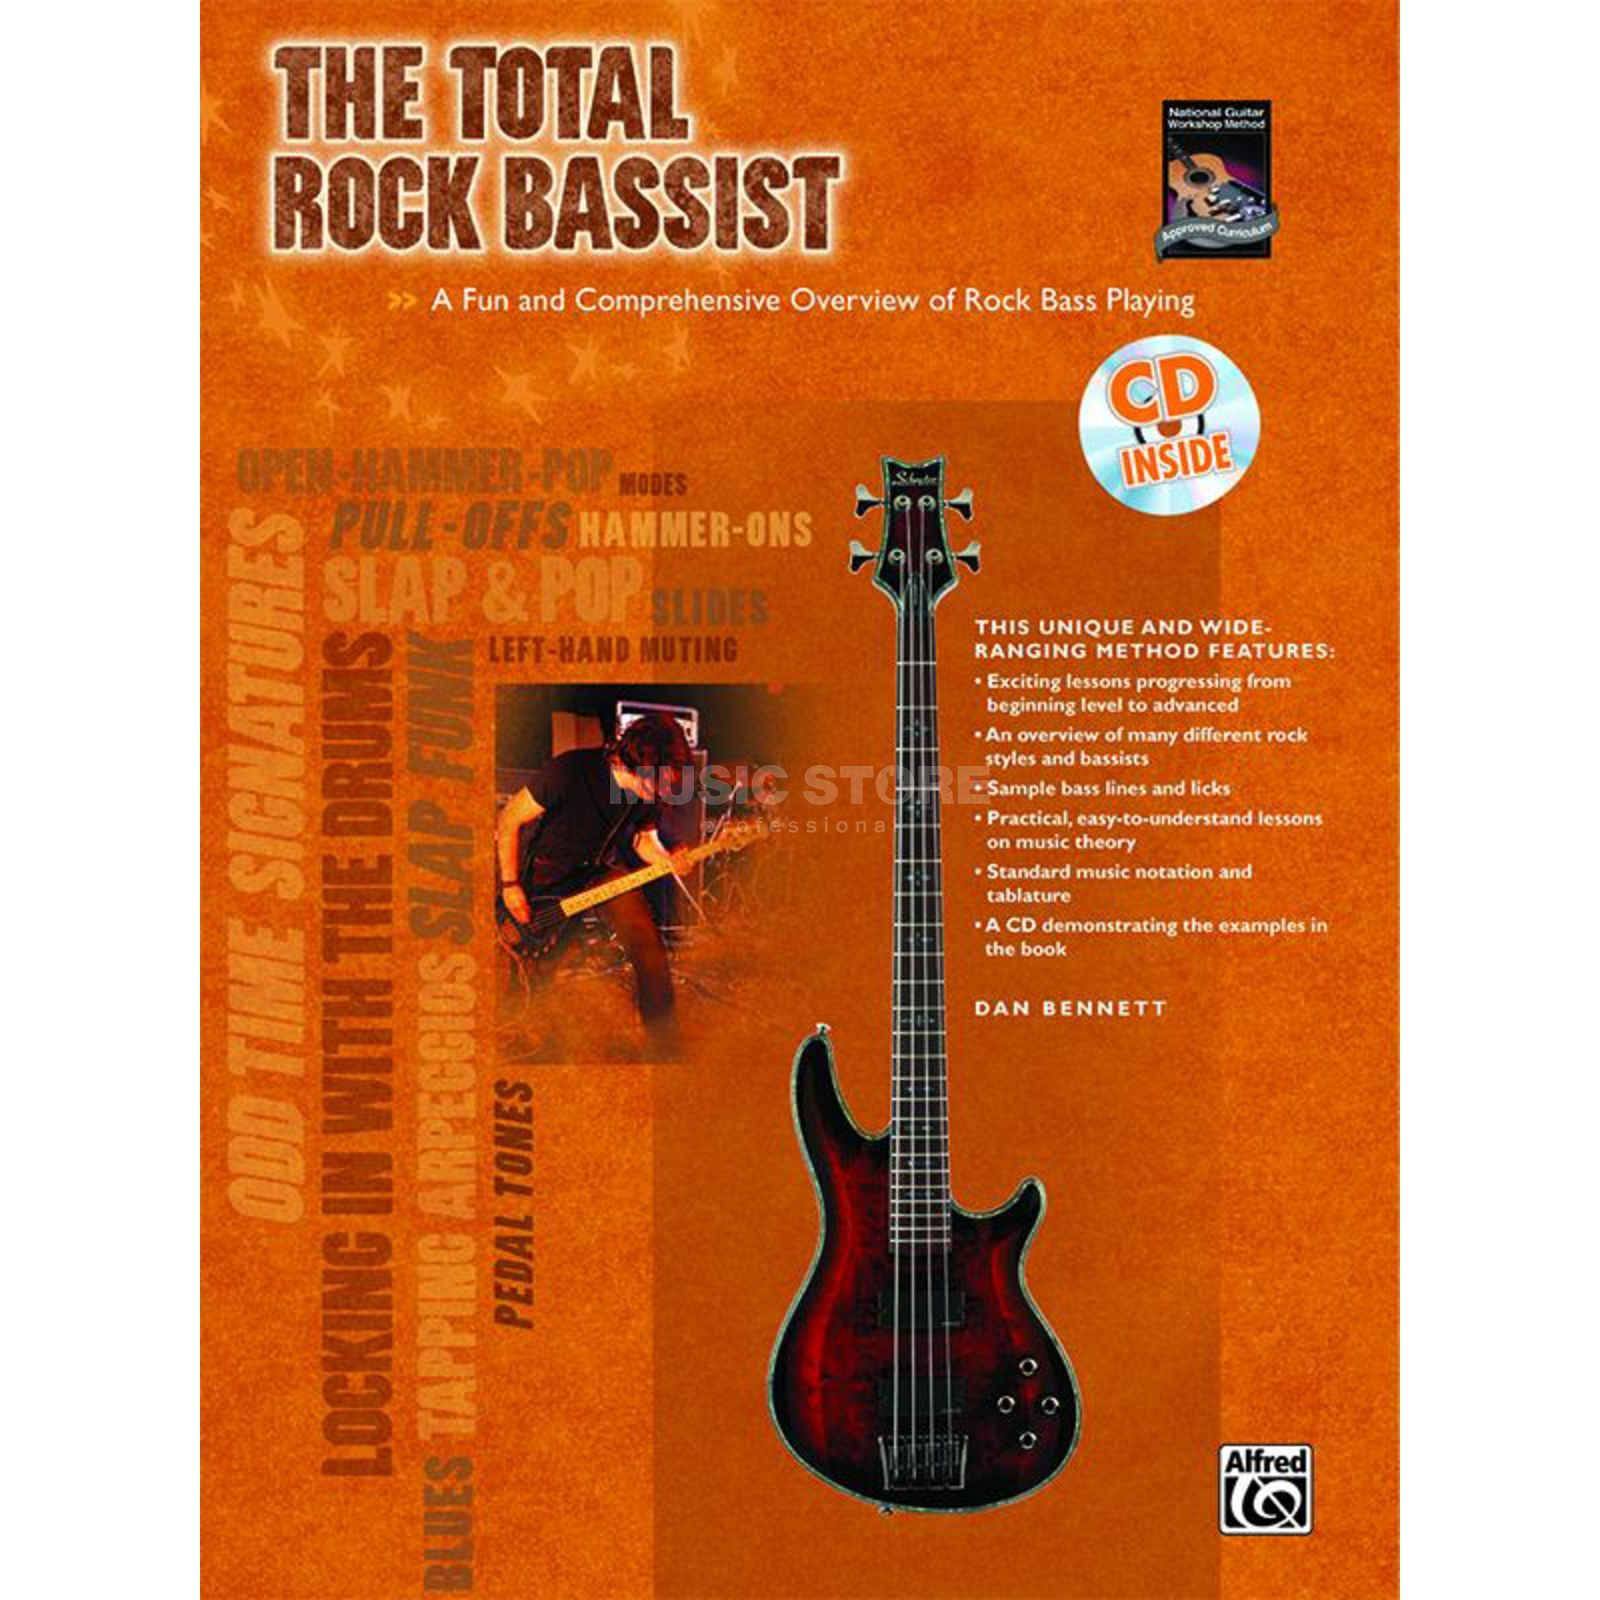 Alfred Music The Total Rock Bassist Lehrbuch und CD Produktbild